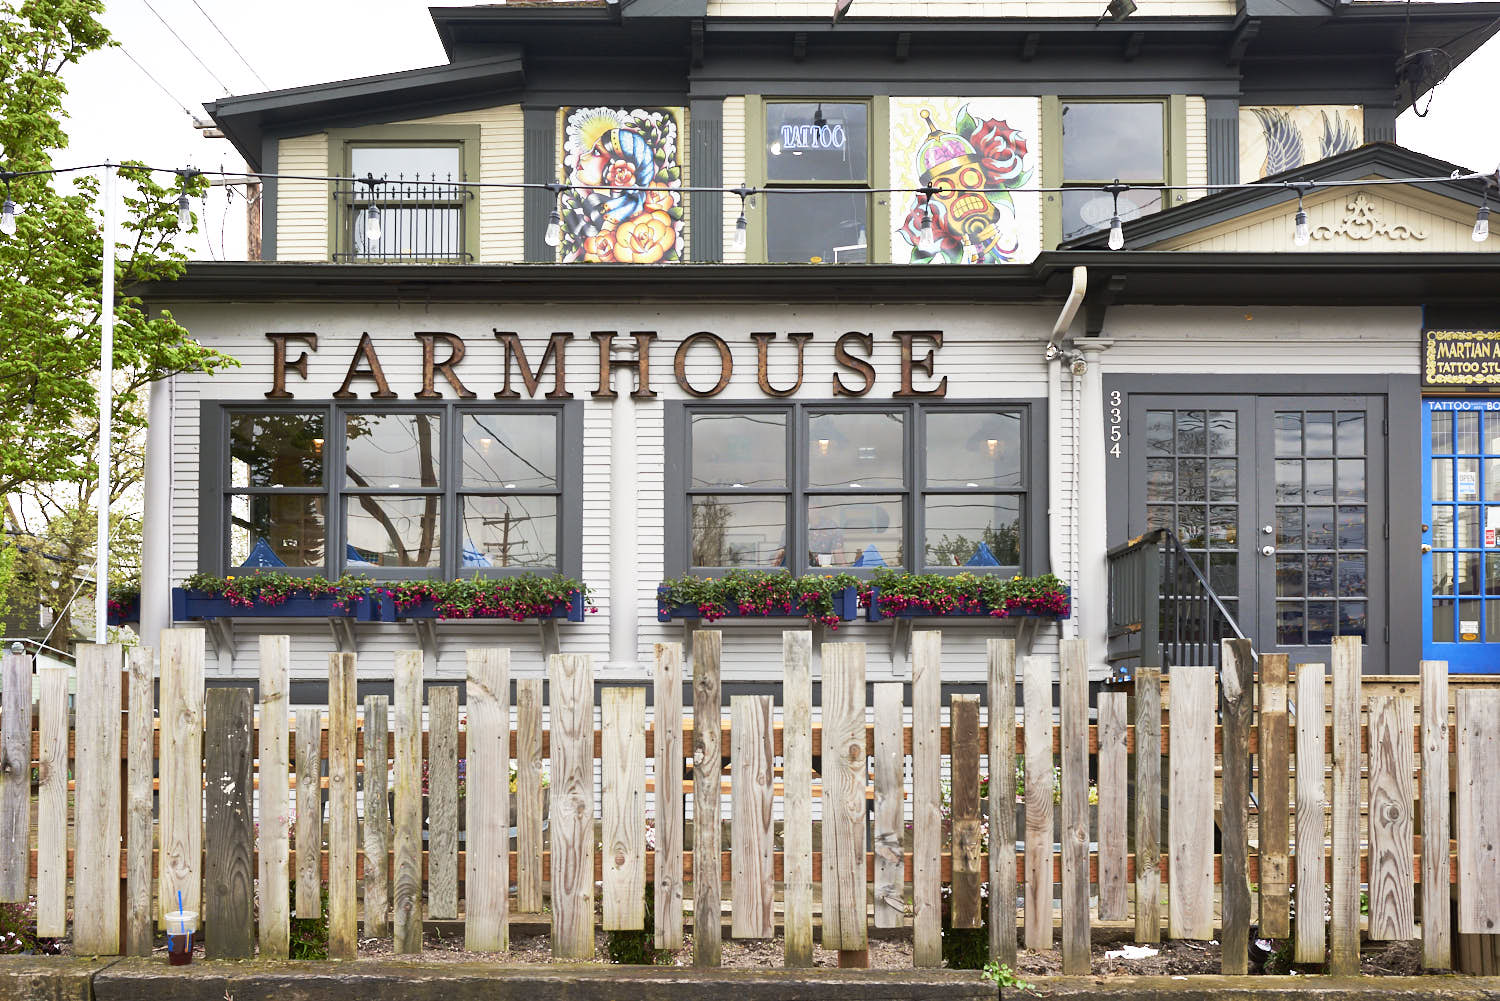 Farmhouse Kitchen Thai Cuisine Dina Avila/EPDX